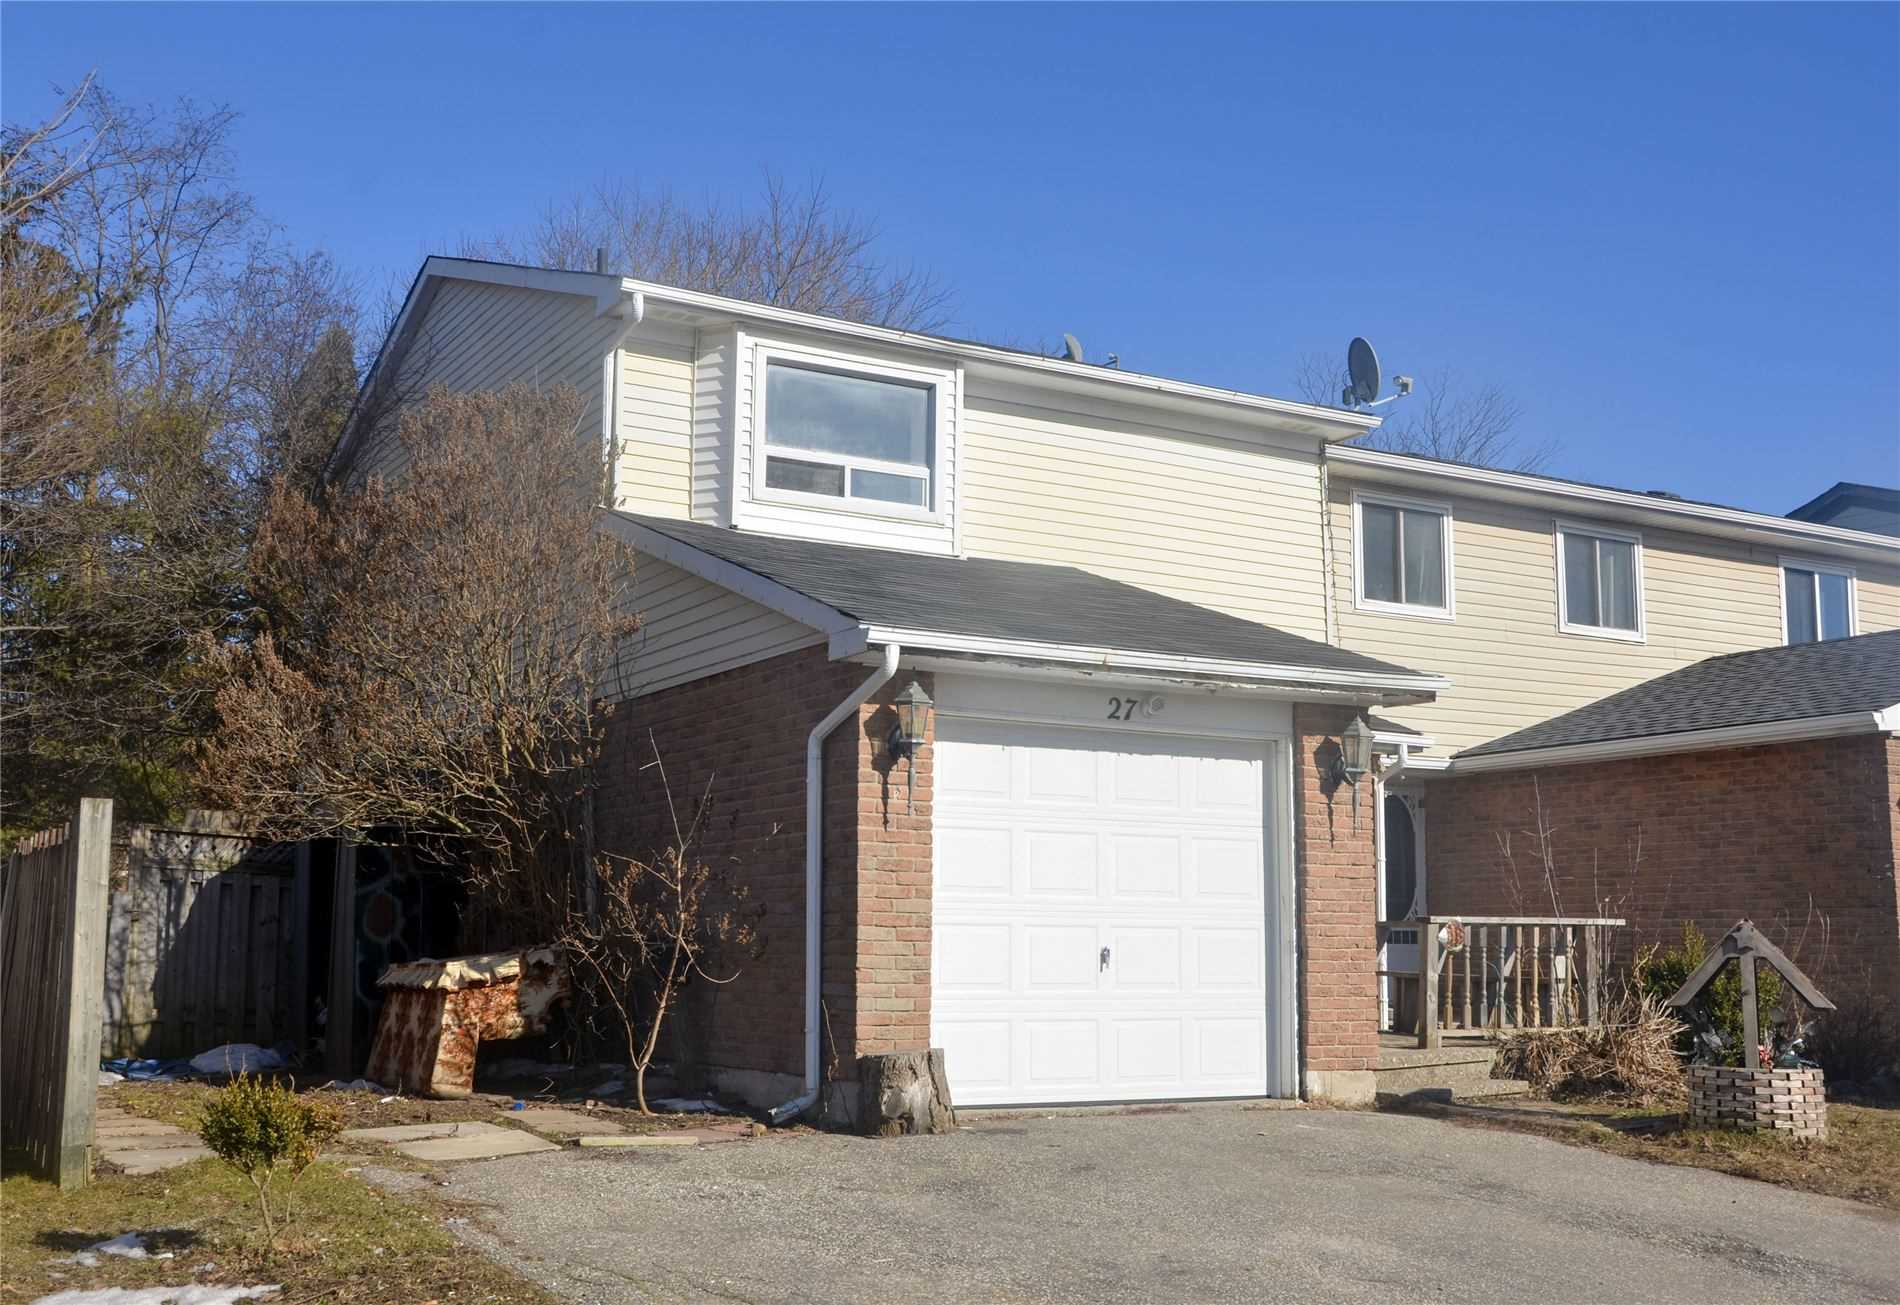 pictures of house for sale MLS: W4724370 located at 27 Burbank Cres, Orangeville L9W3E6